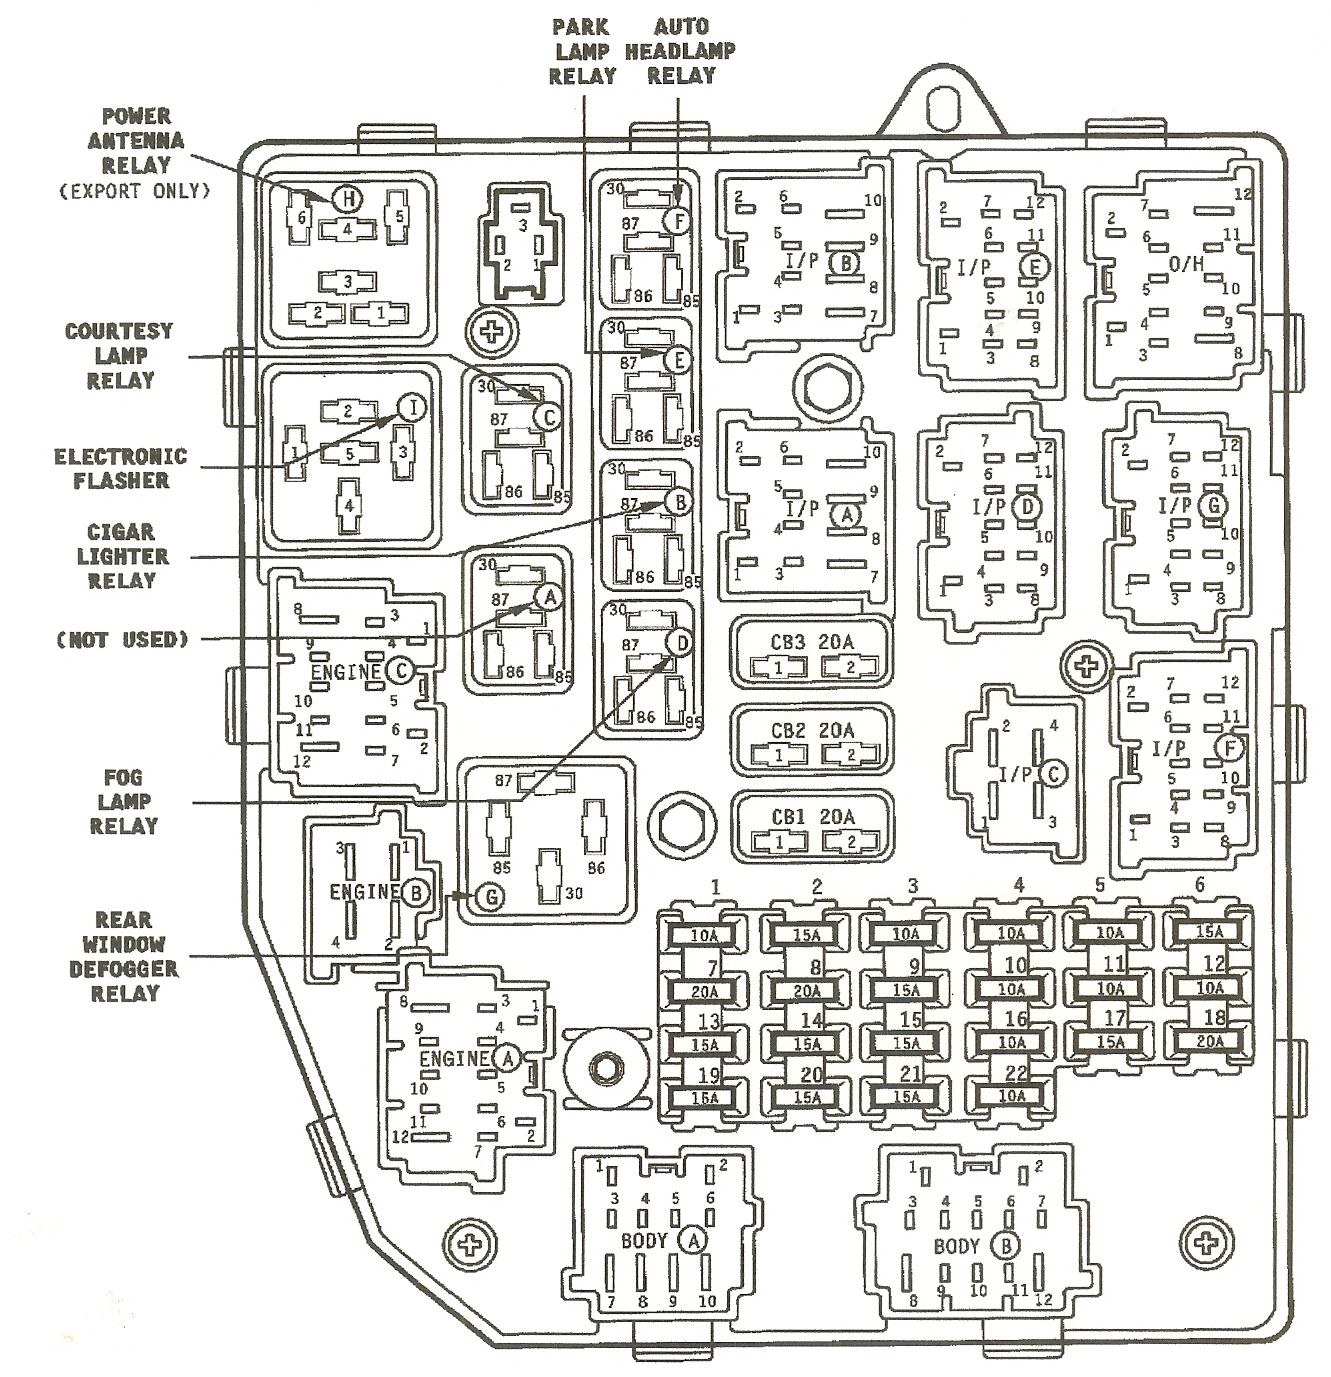 Diagram Wiring Diagram Jeep Grand Cherokee Full Version